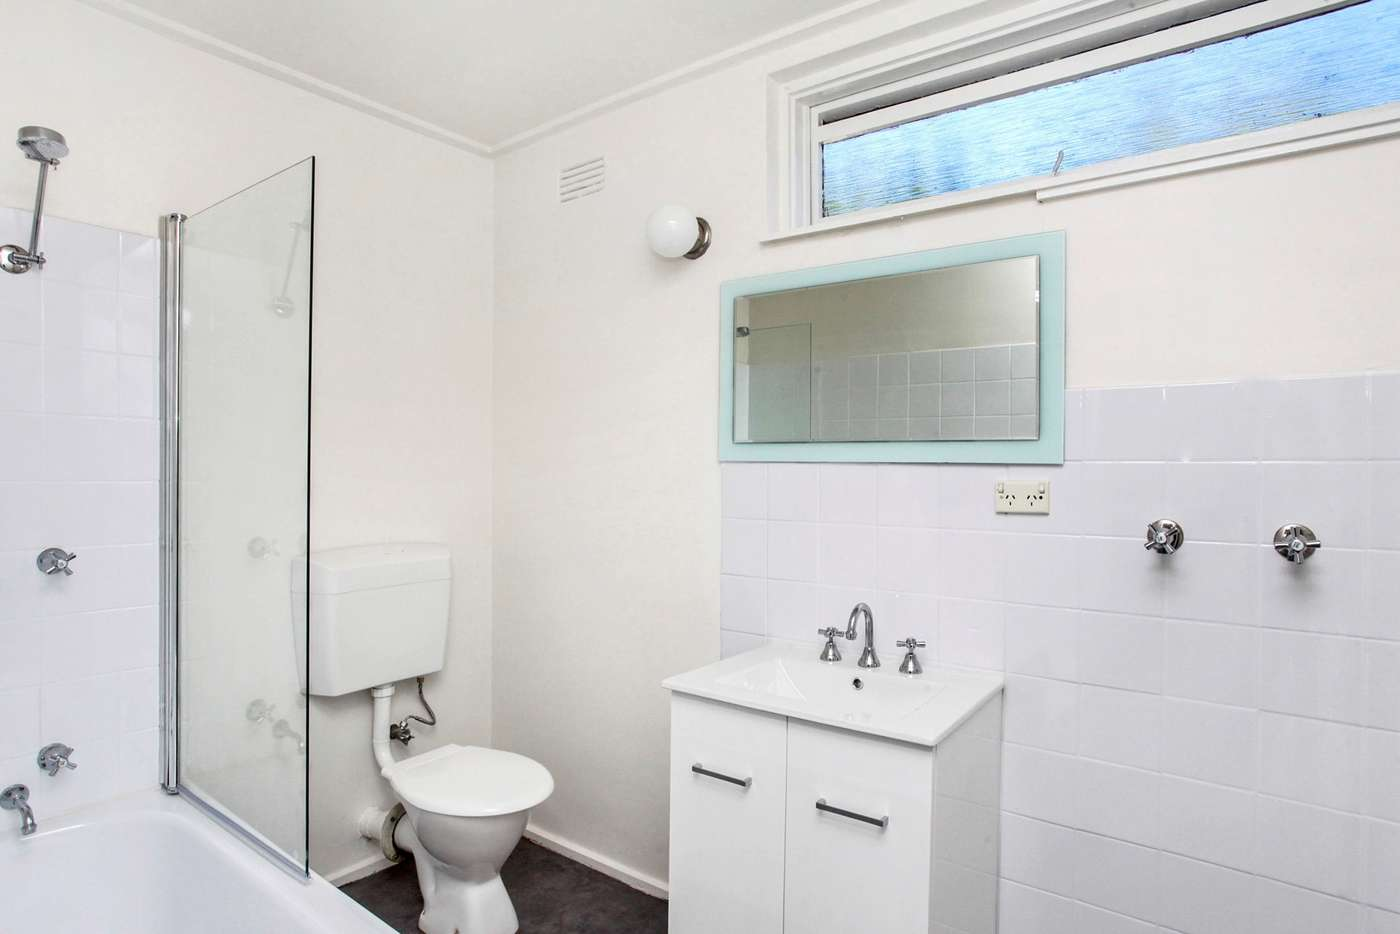 Sixth view of Homely apartment listing, 5/4 Edward Street, Seddon VIC 3011